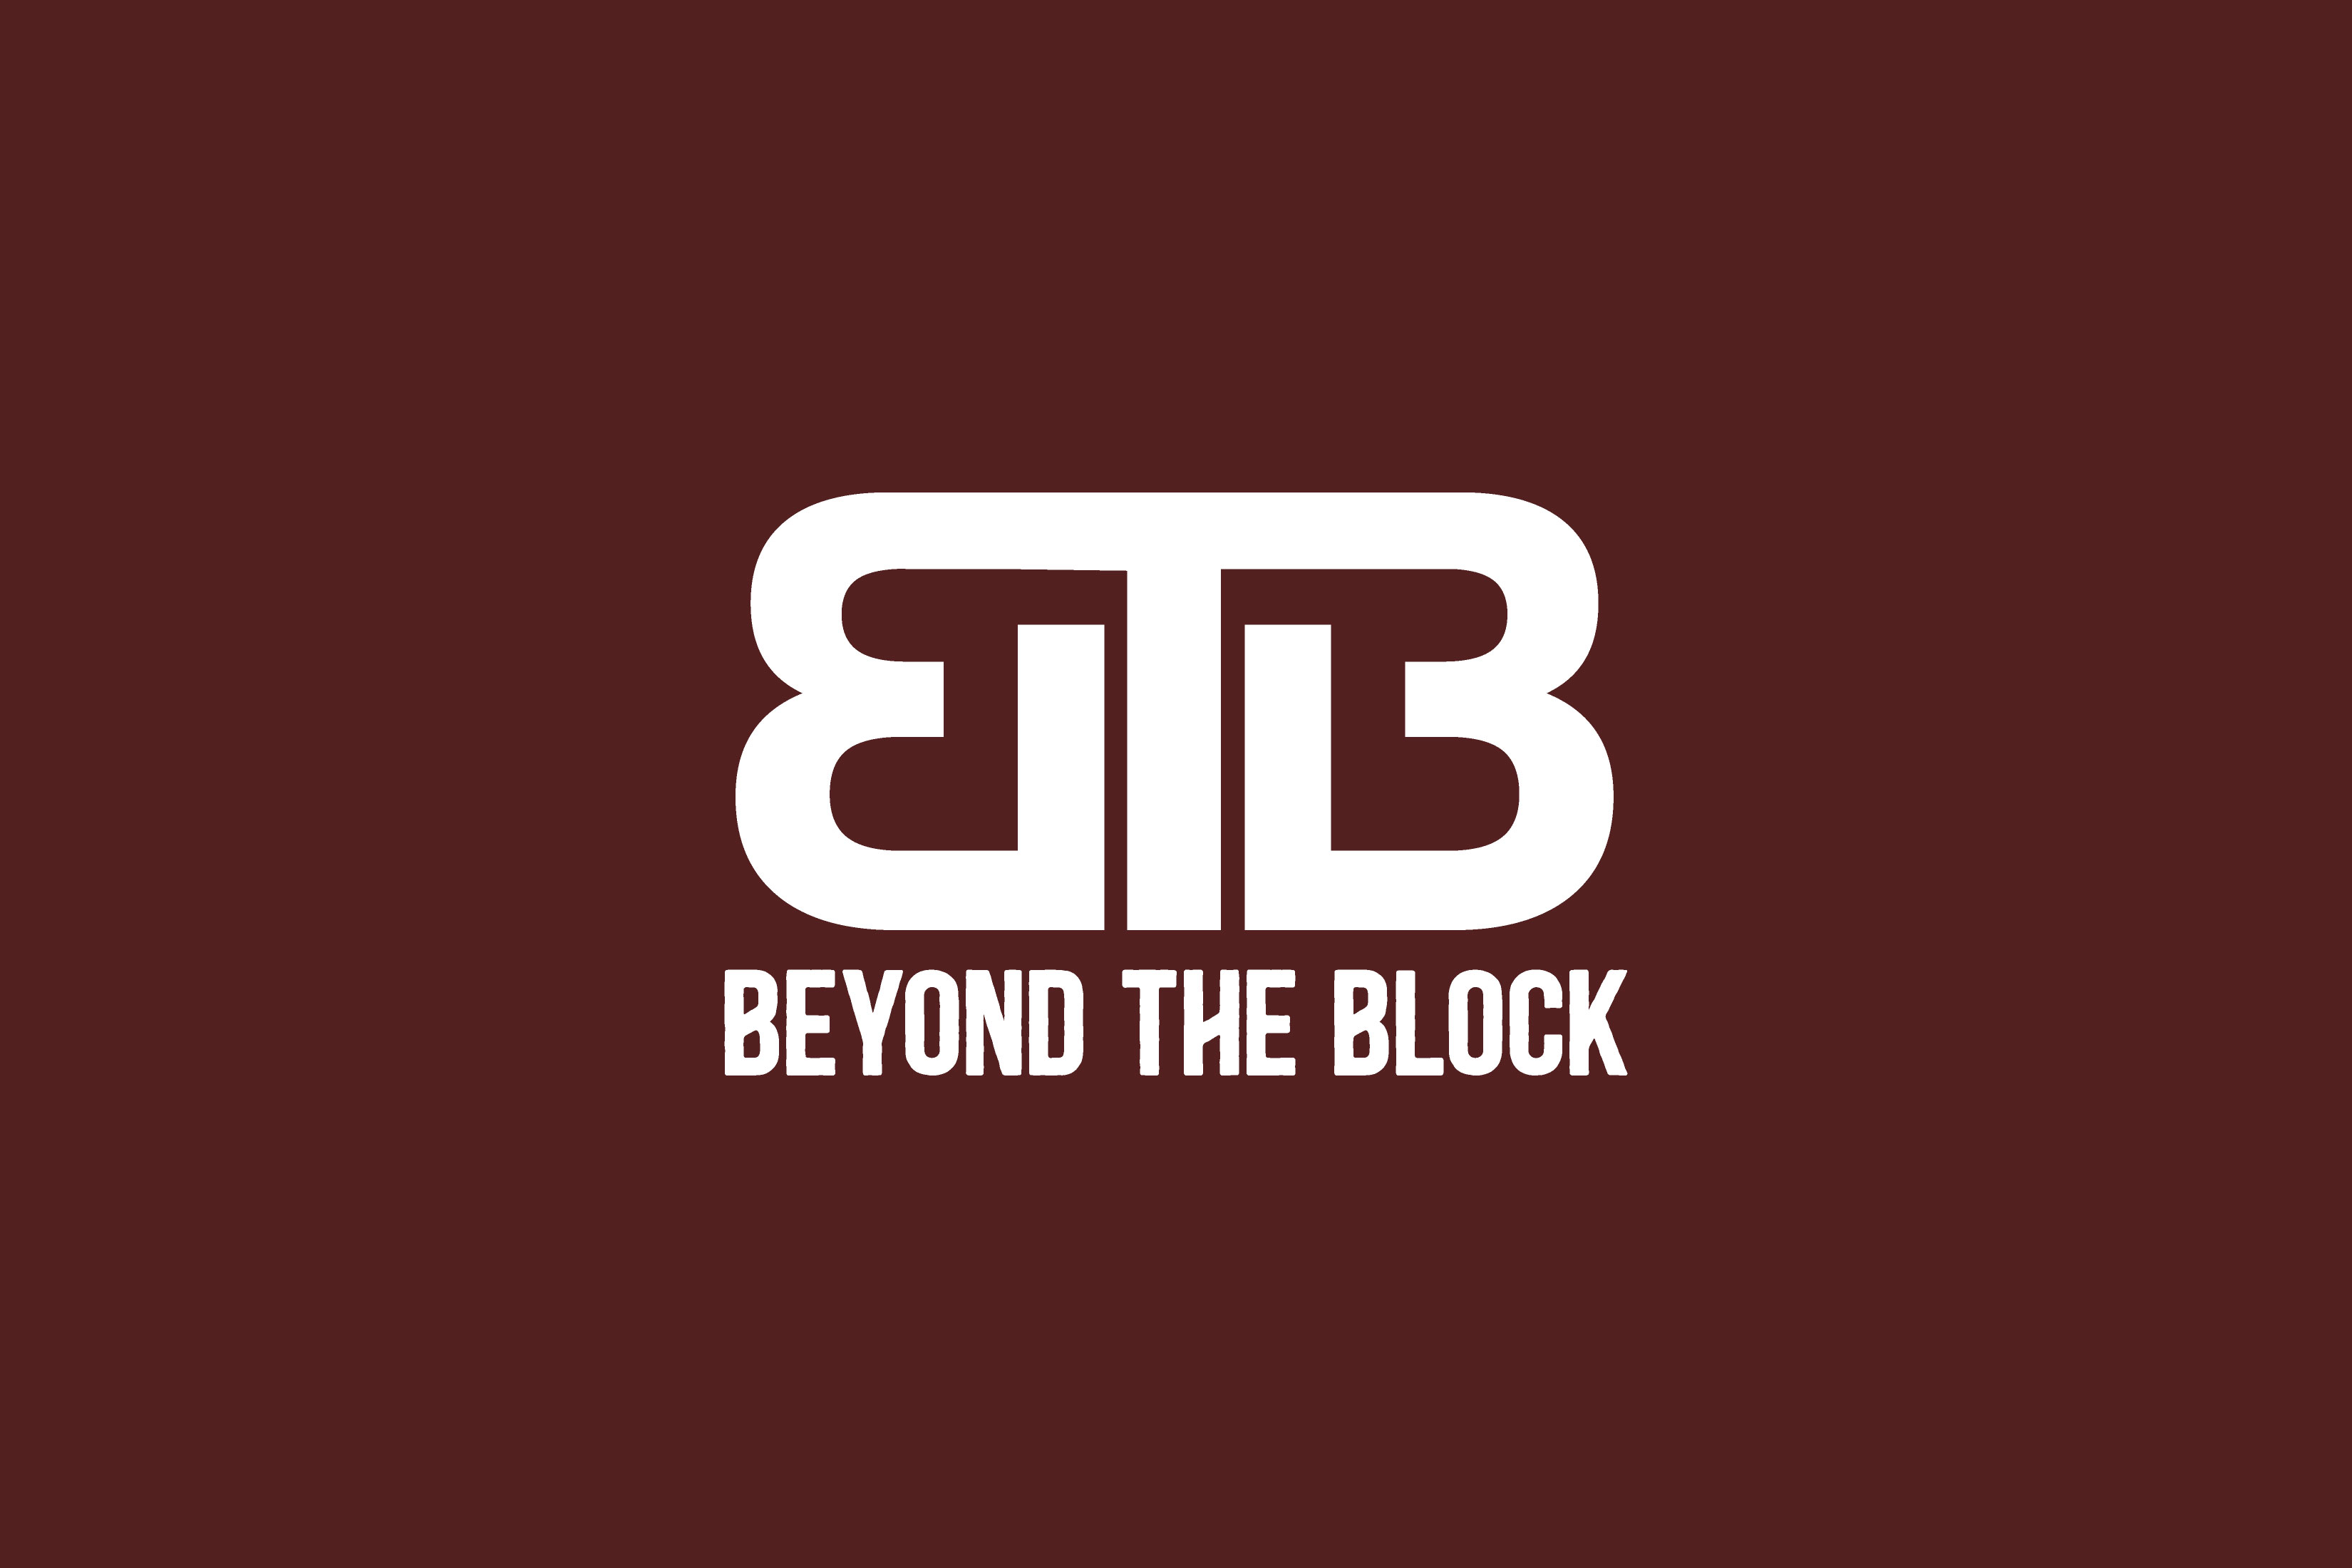 Beyond The Block album art